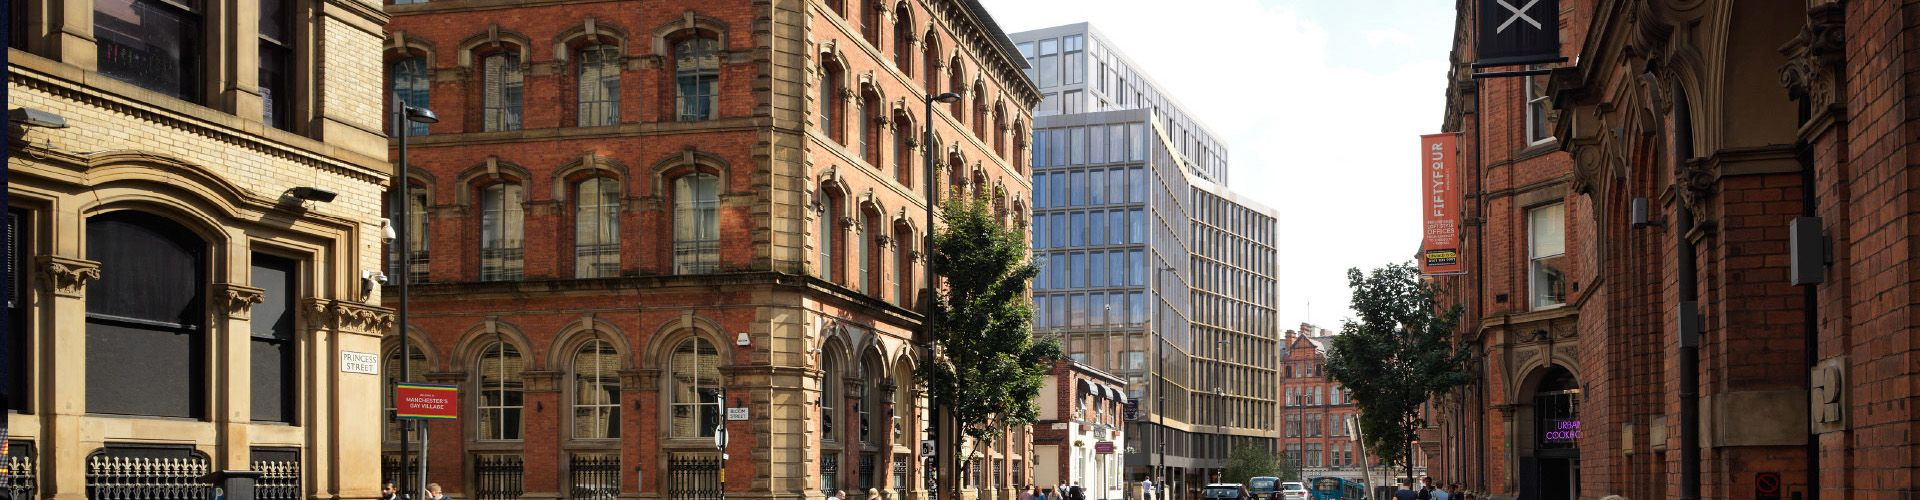 27.10.15_Plans submitted to regenerate key city centre site in Manchester.jpg